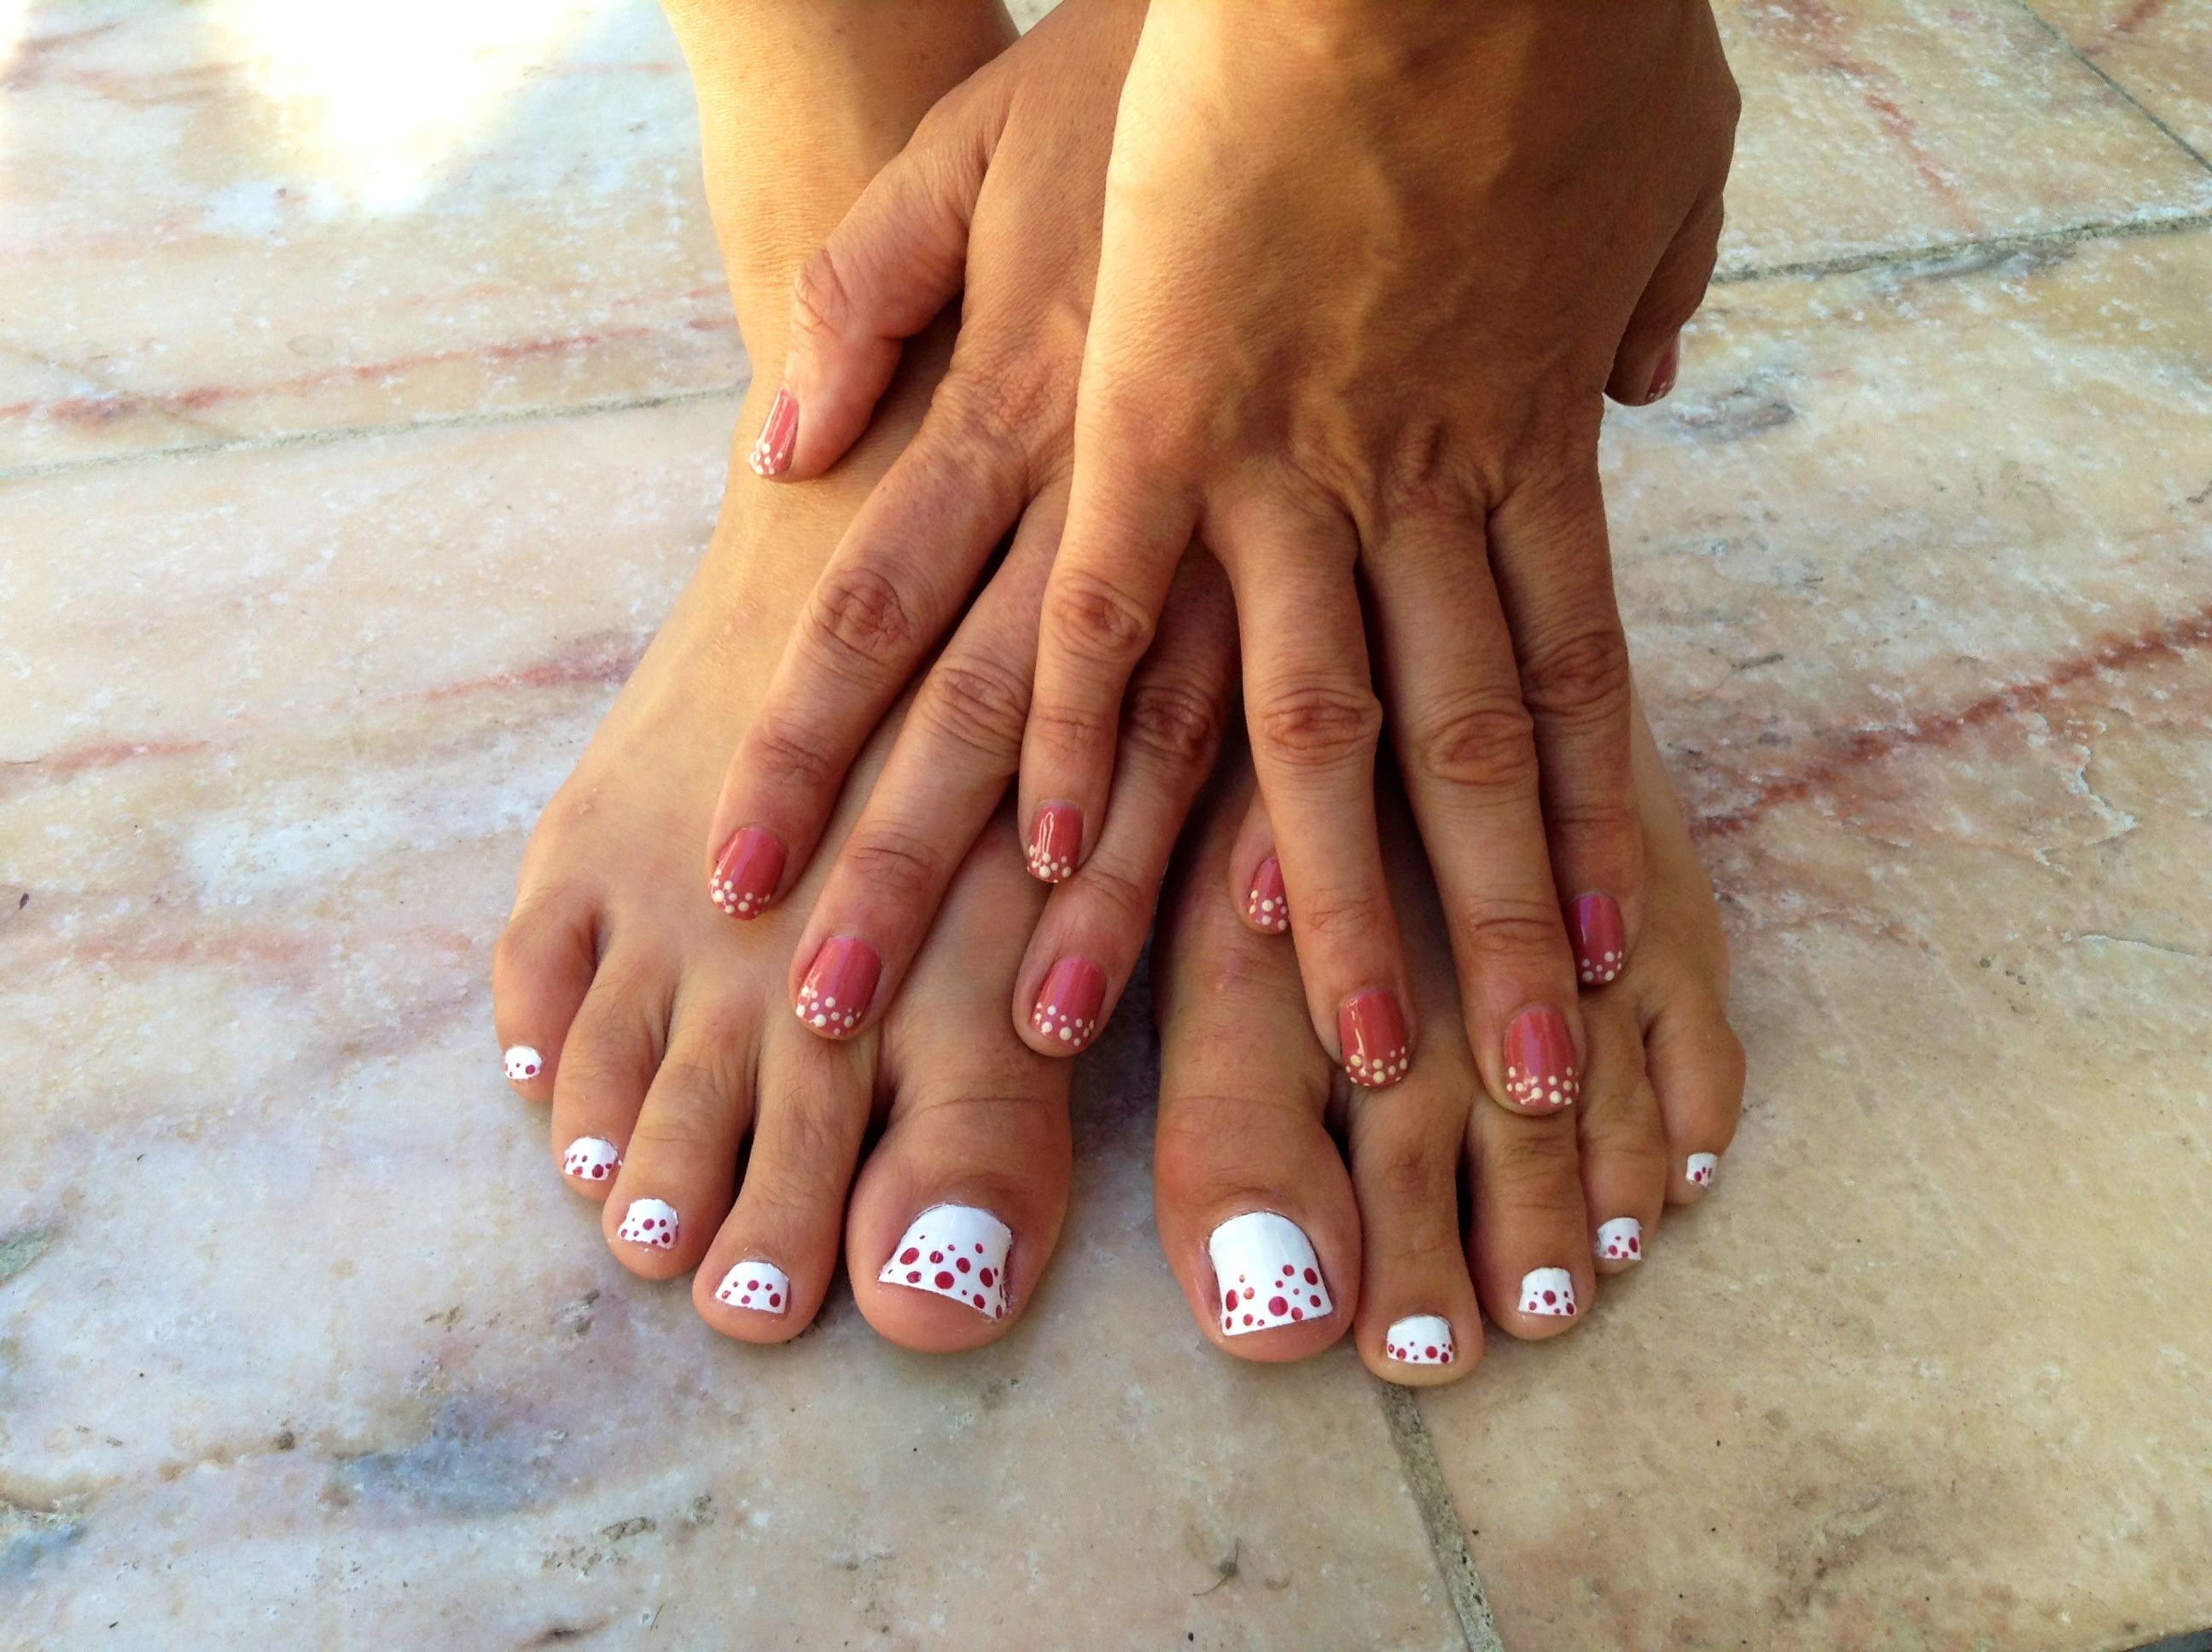 Gel ii custom nail art manicure with a Butter London pedicure- The perfect pair!